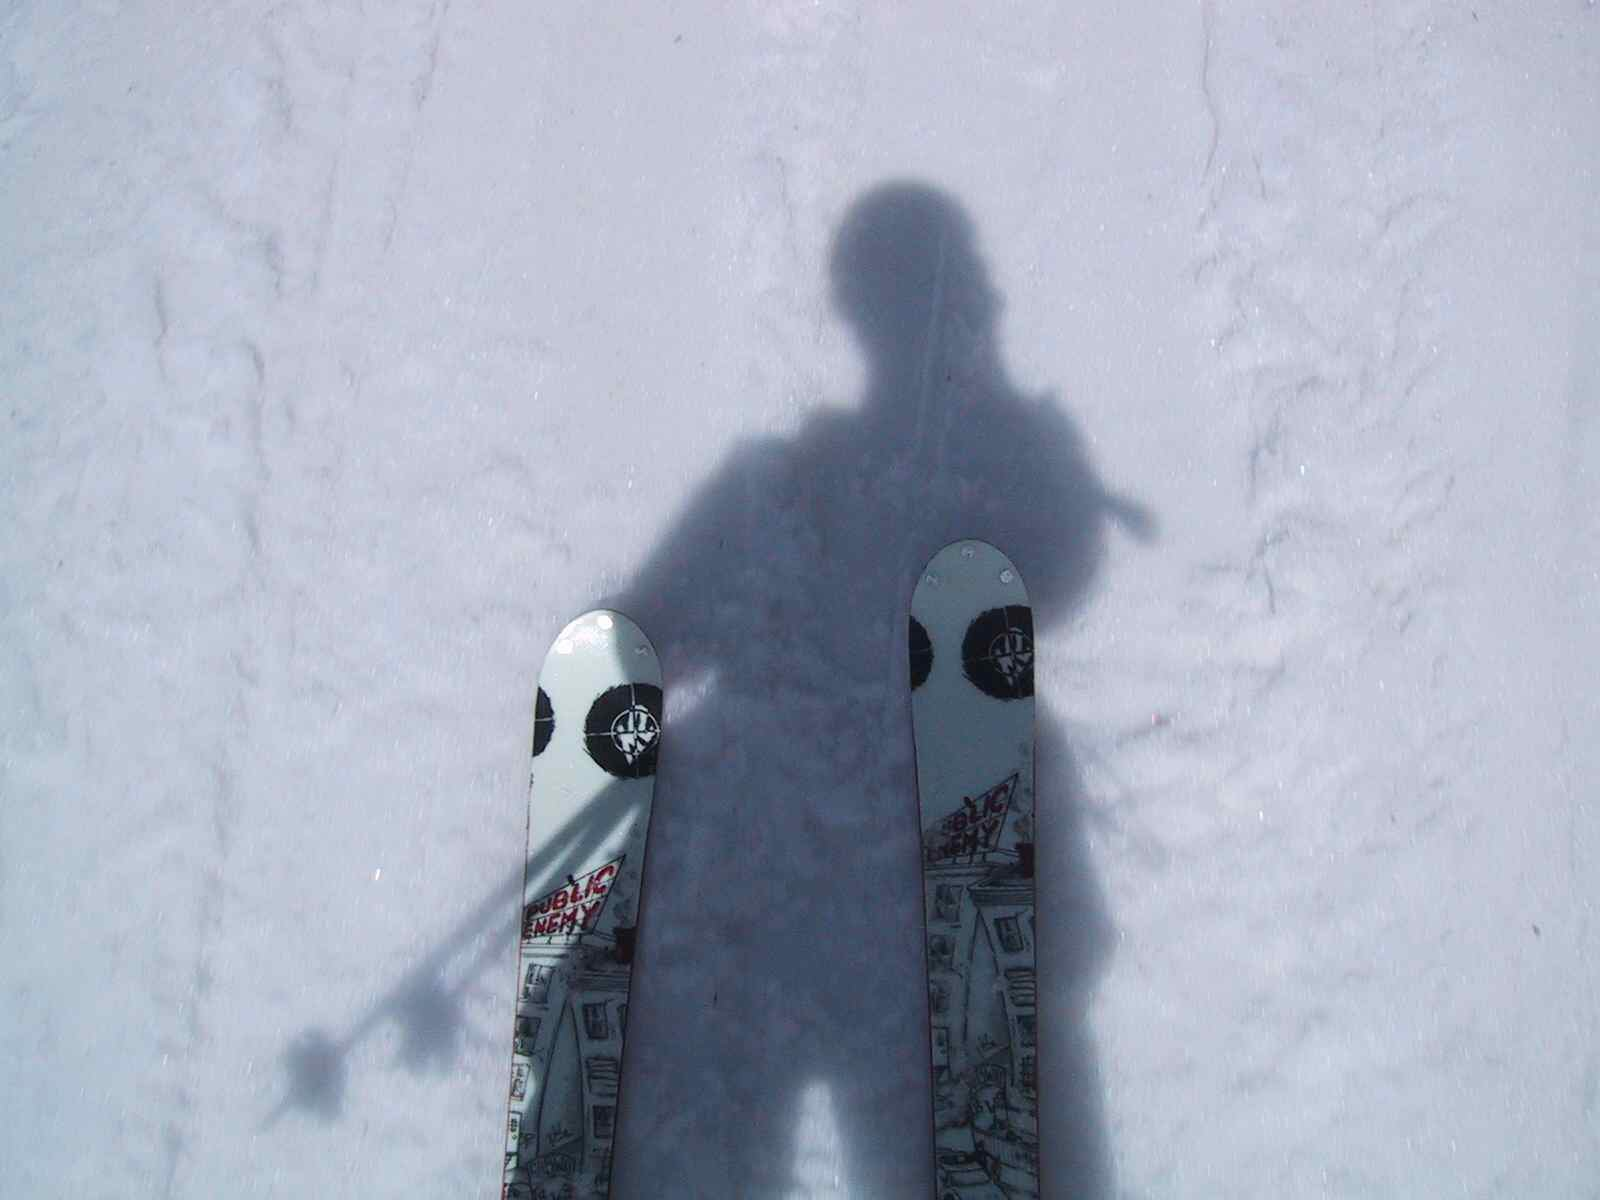 skis and a shadow